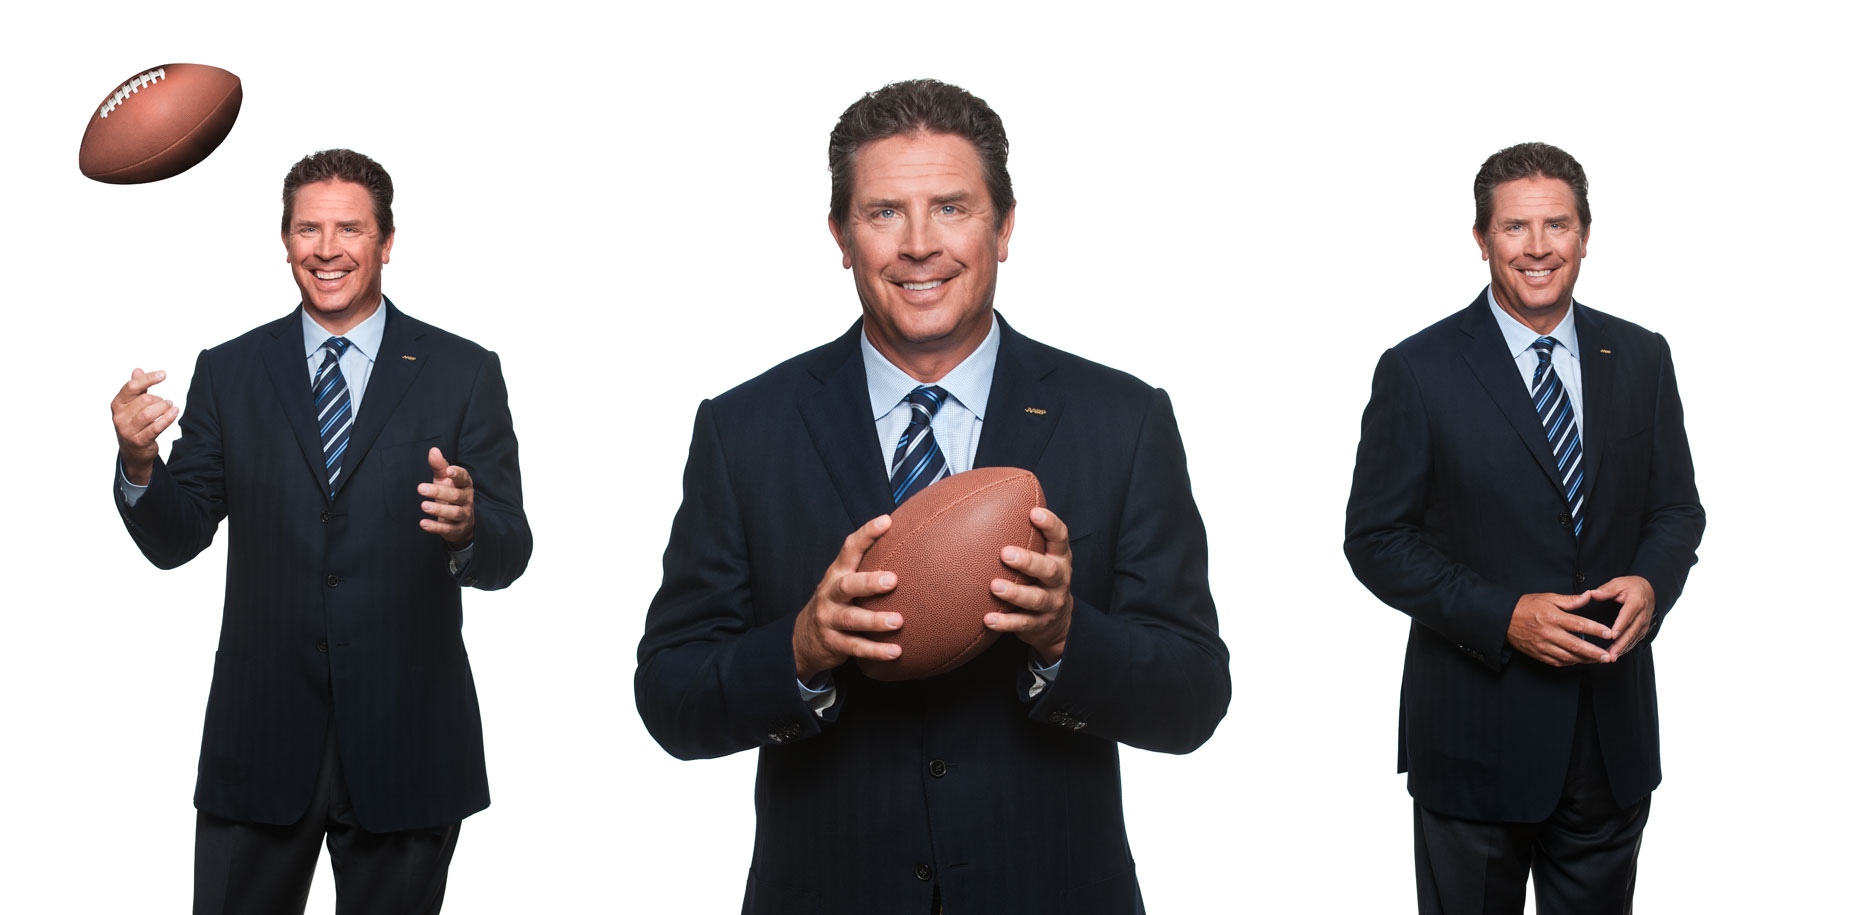 Dan Marino smiling with a football in front a white background